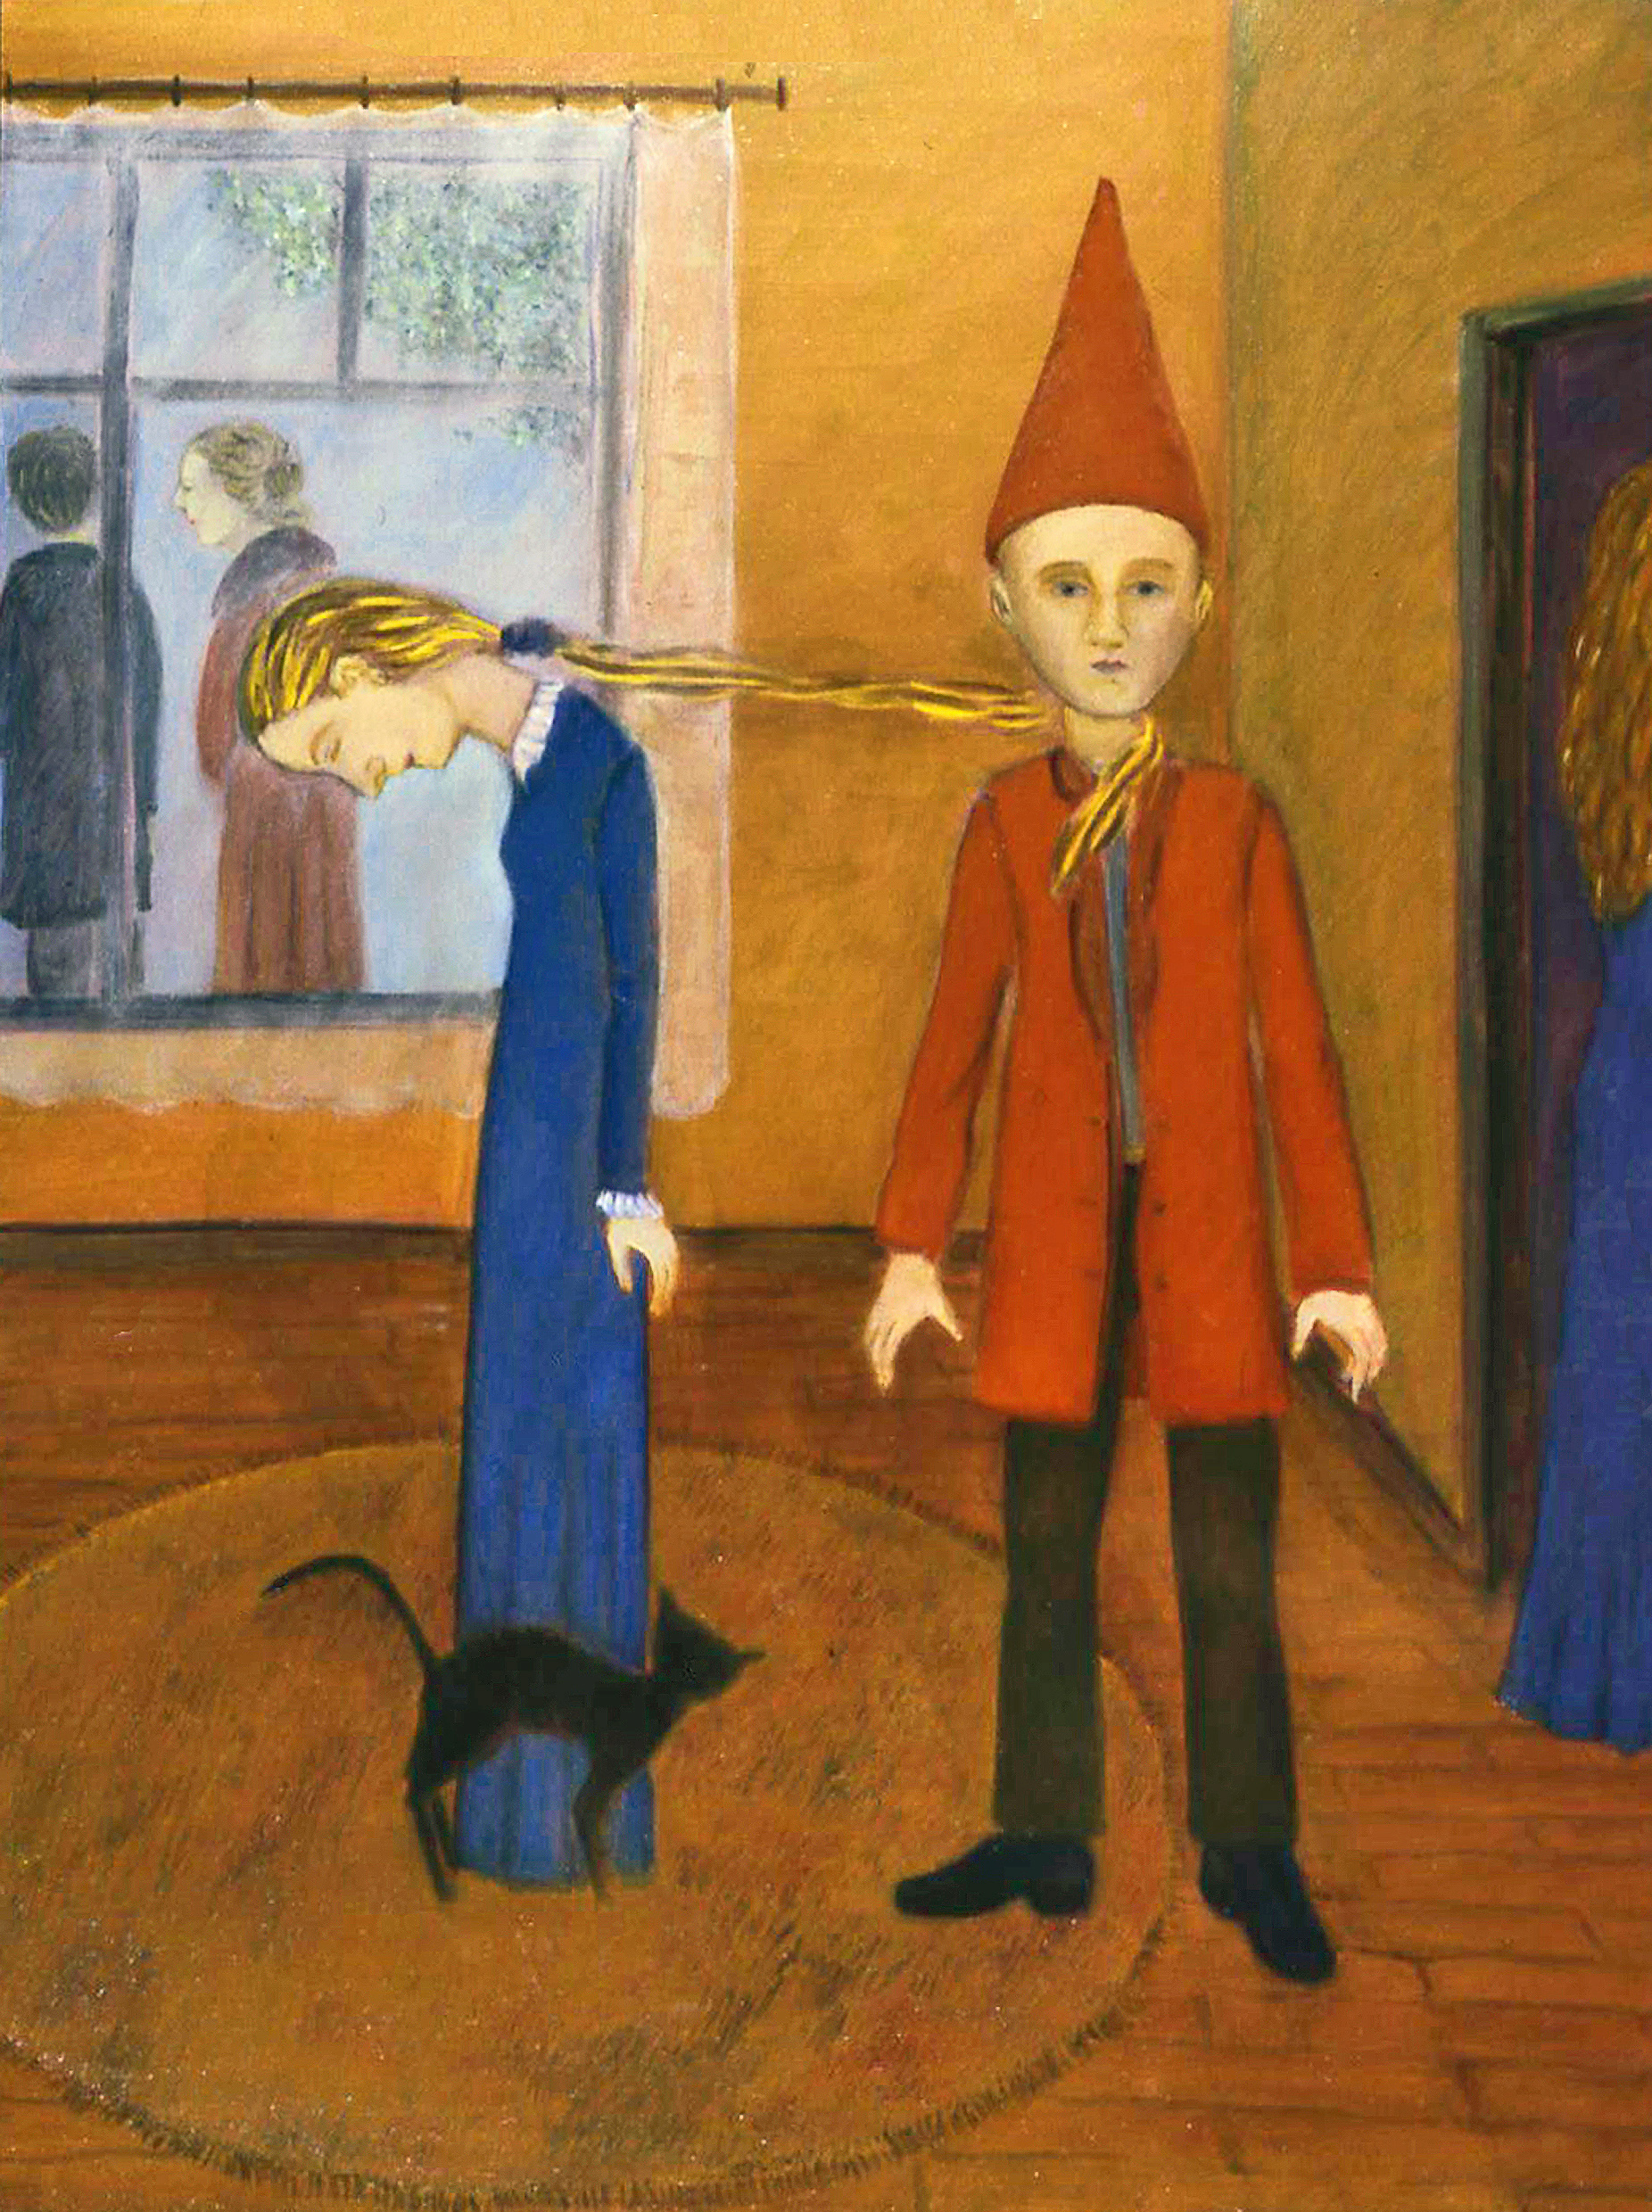 Dunce, oil on clayboard, by Bert Menco